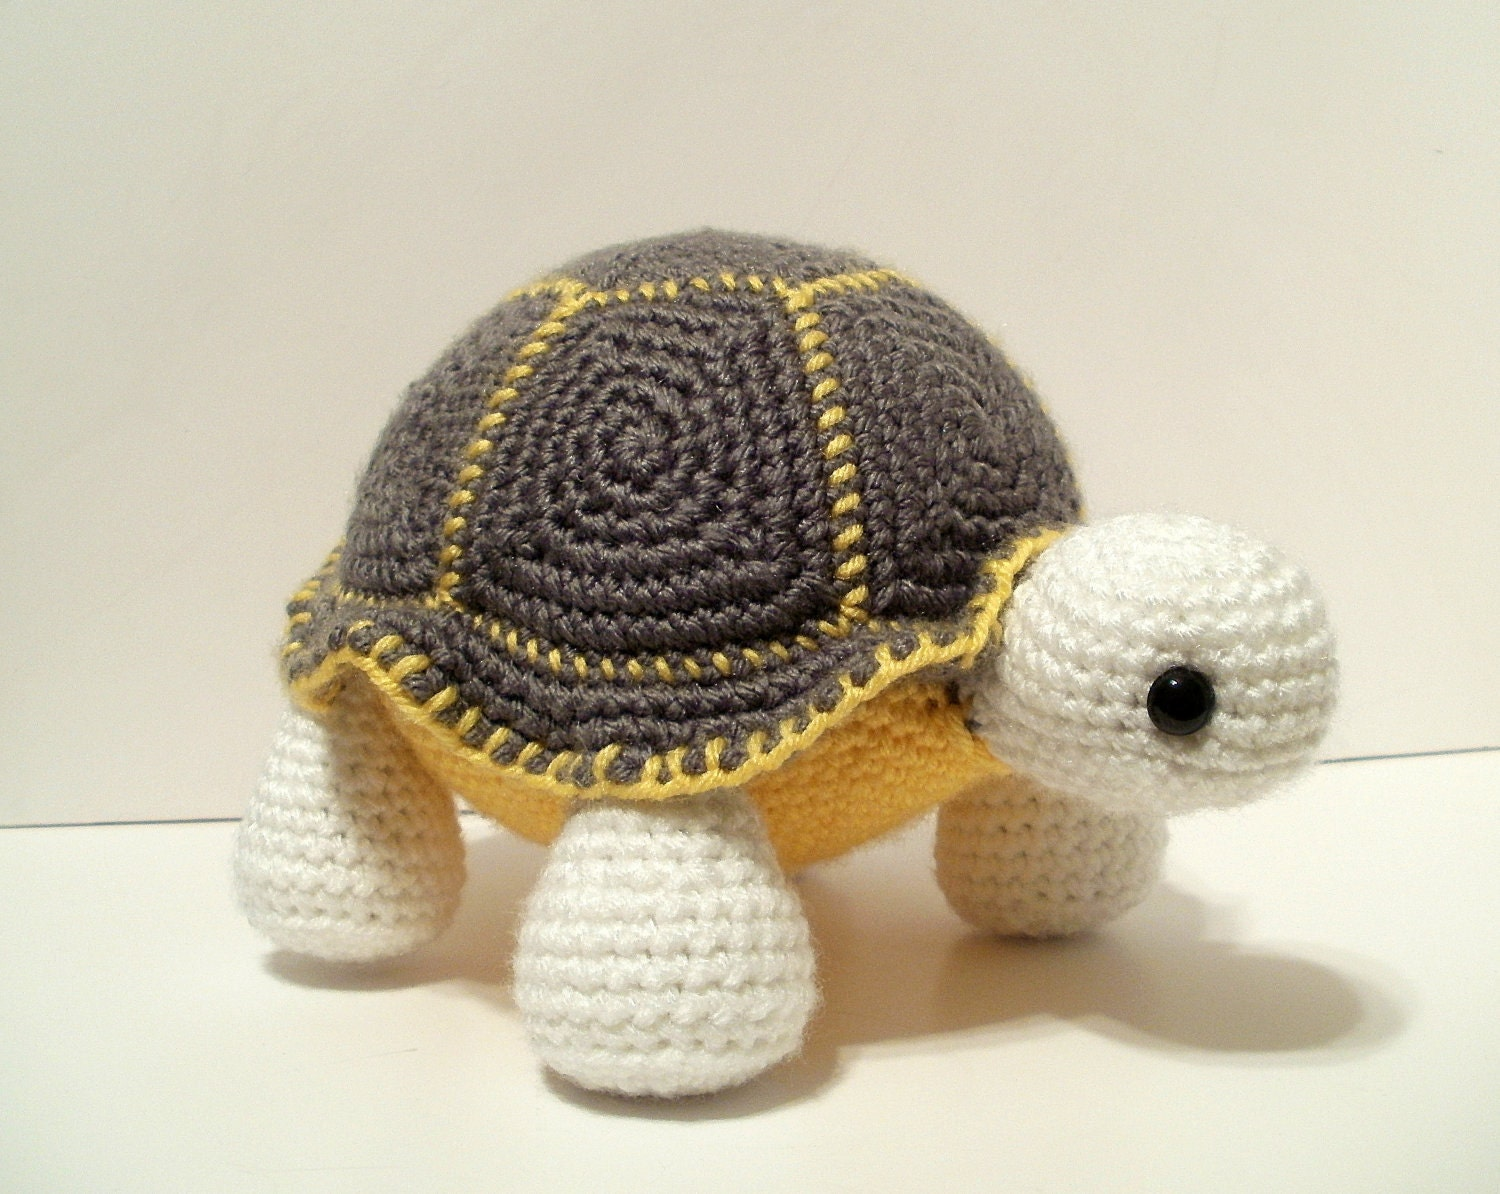 Crochet Patterns Turtle : Crochet Turtle Crochet Toys/Food Pinterest